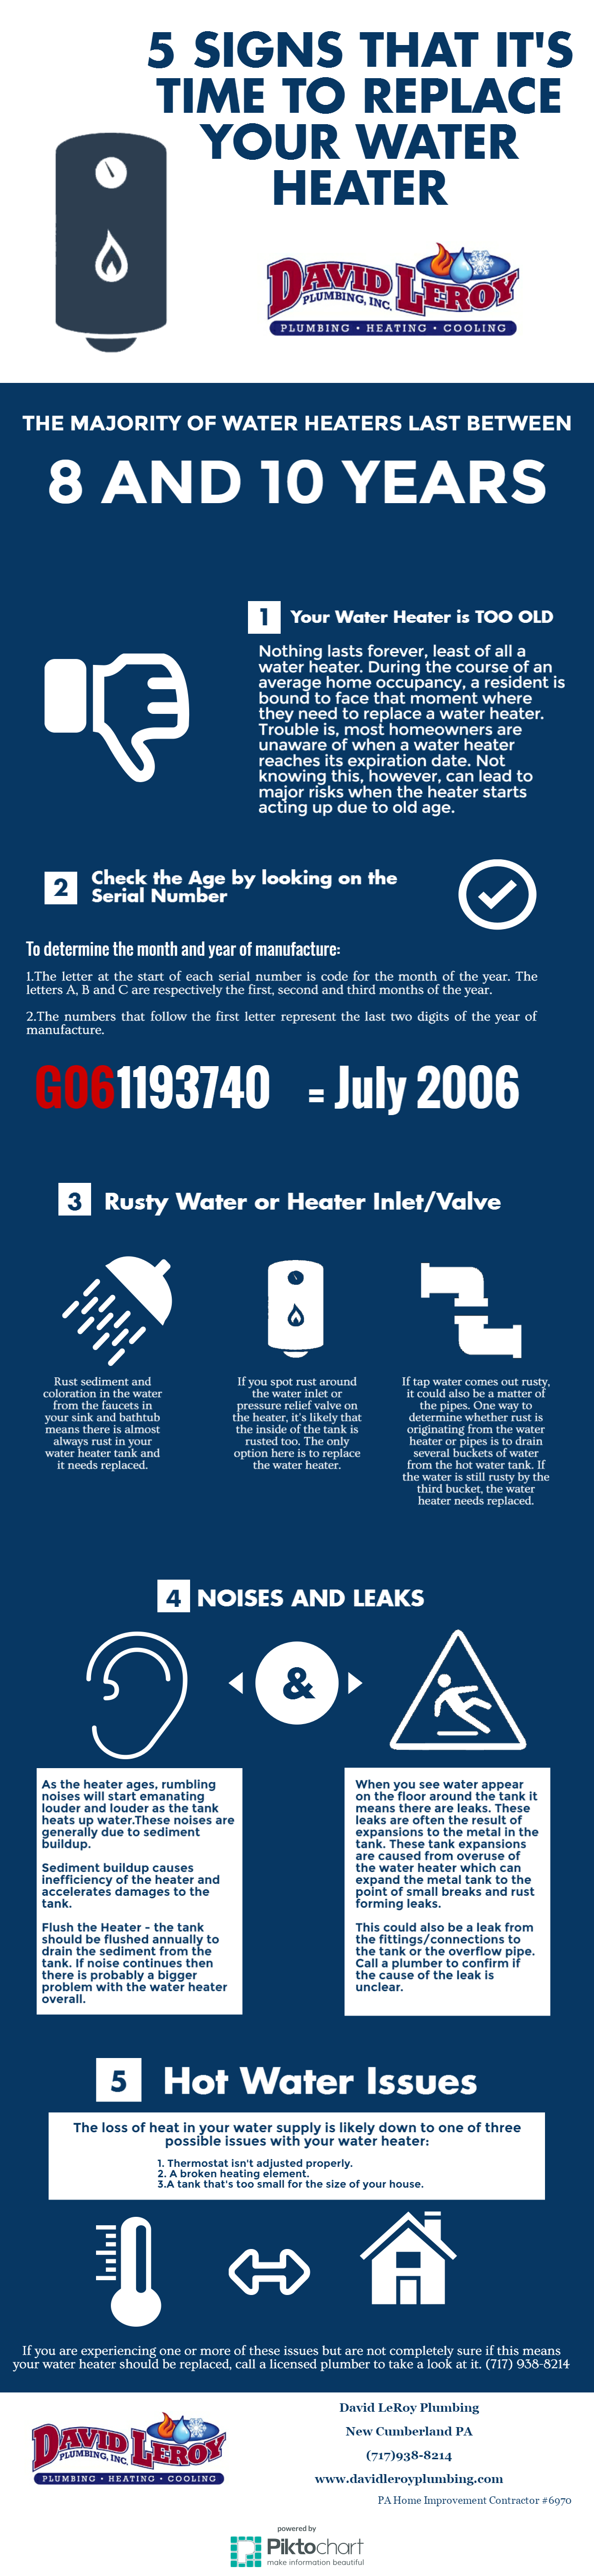 Signs to Replace Water Heater | David LeRoy Plumbing